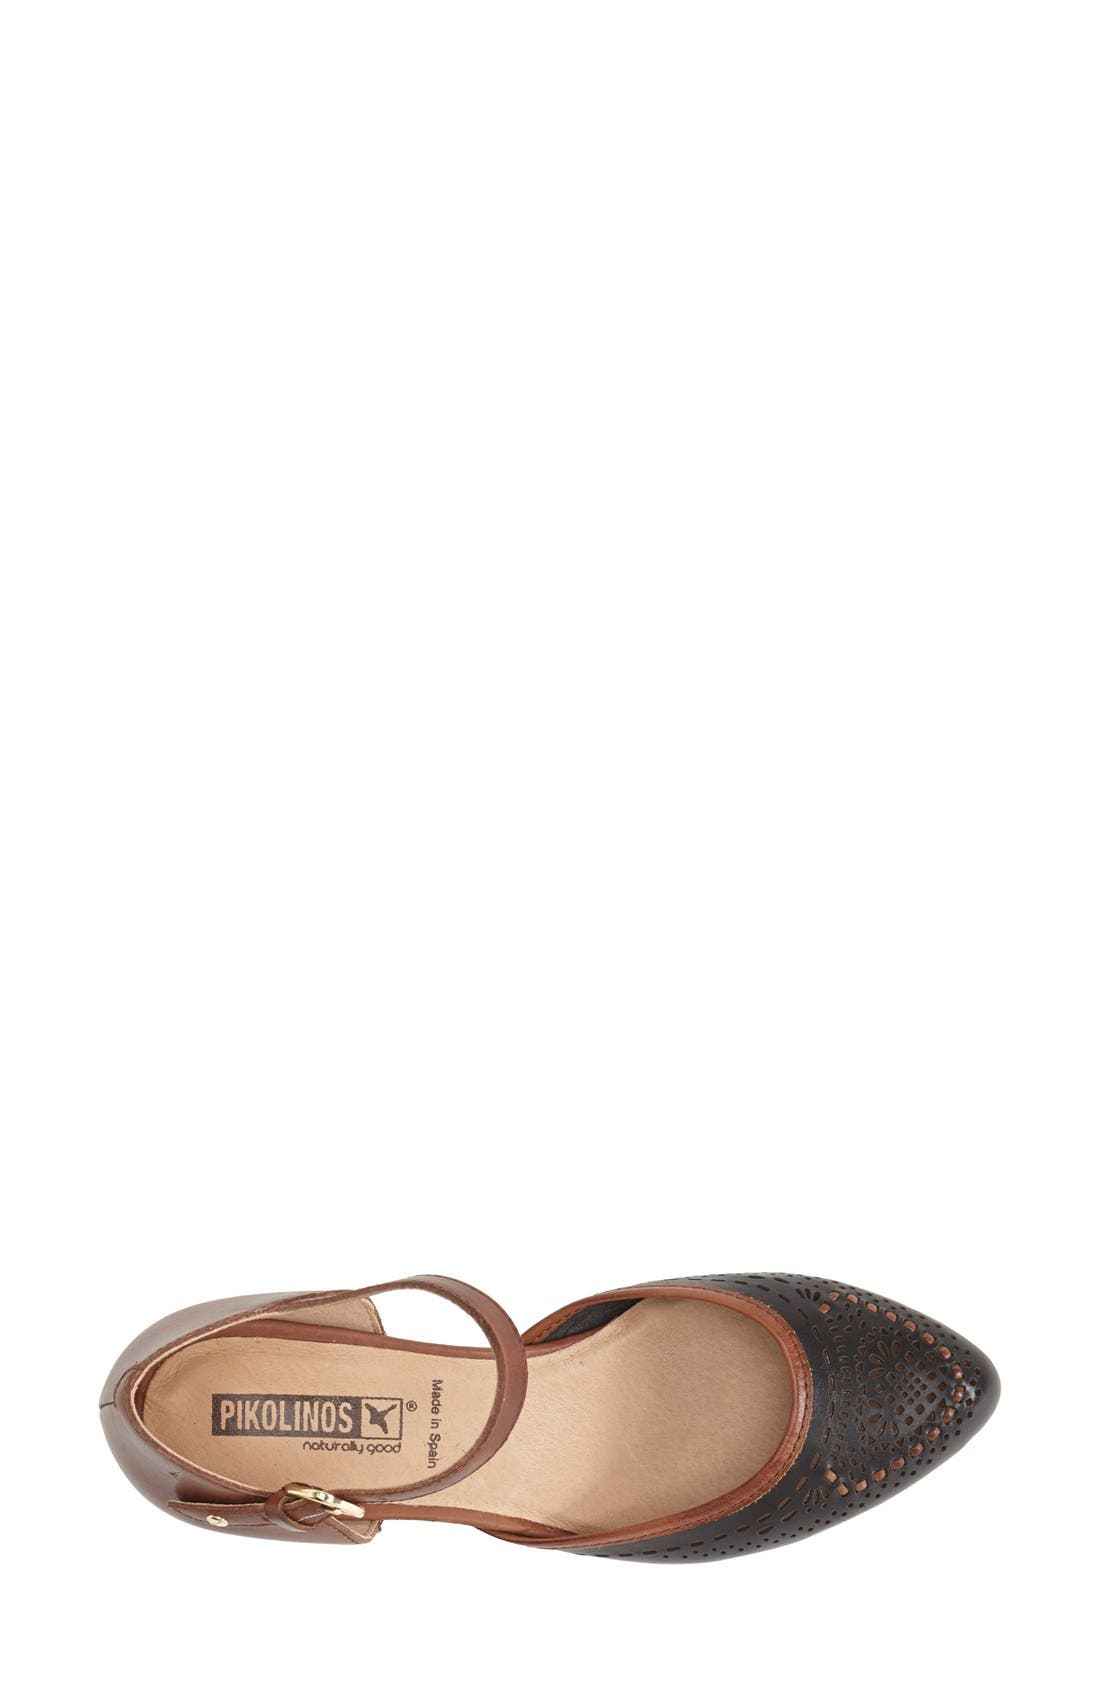 'Elba' Perforated Leather Ankle Strap Sandal,                             Alternate thumbnail 3, color,                             Black Leather